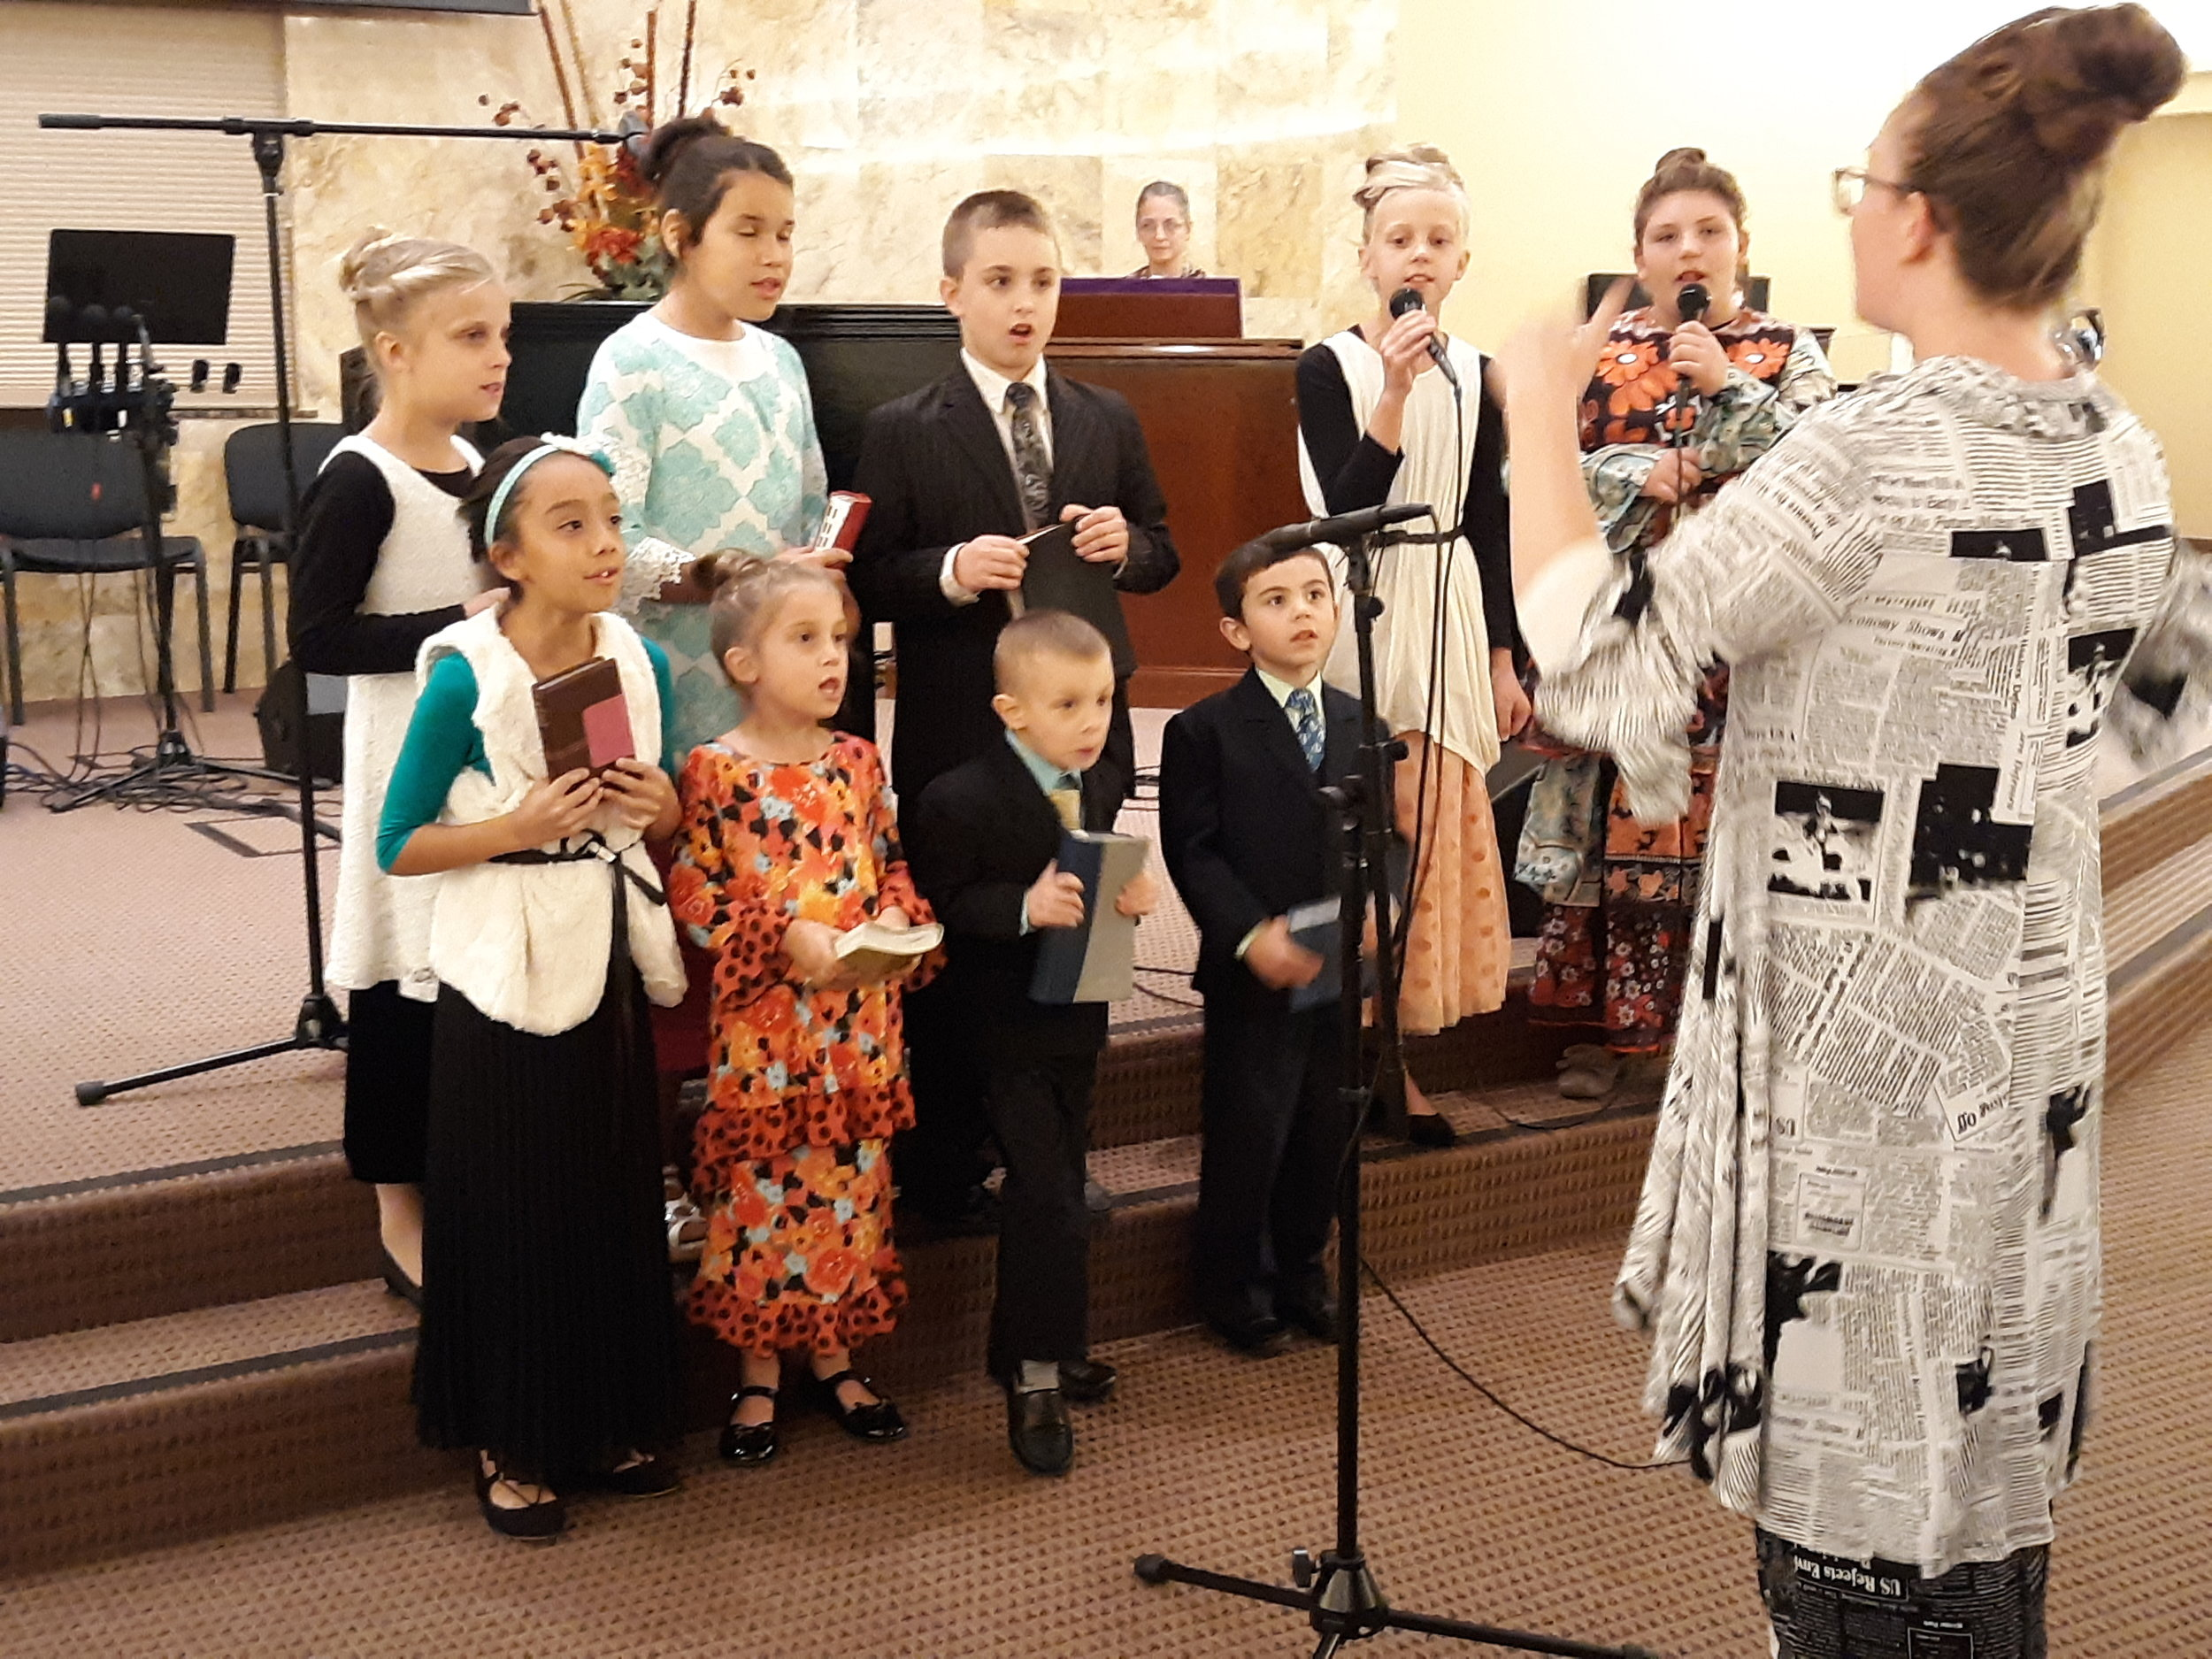 Our New Junior Youth Choir performing for the first time :)